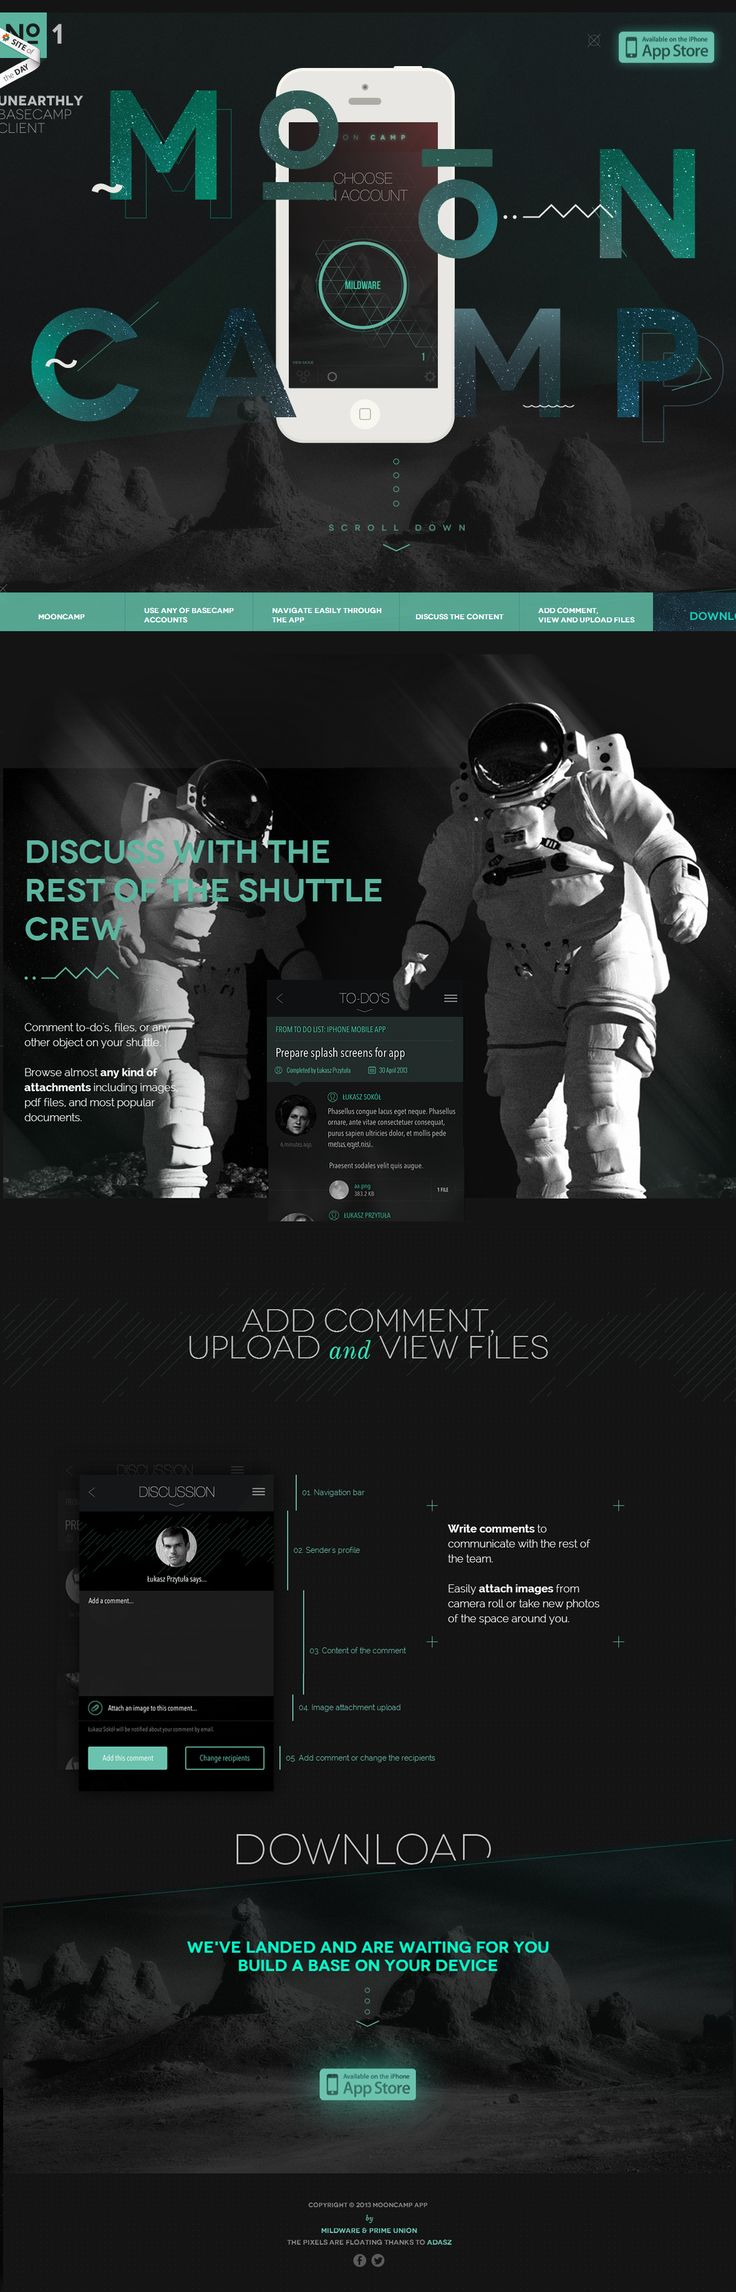 MoonCamp, 30 November 2013. http://www.awwwards.com/web-design-awards/mooncamp  #App #Unearthly #OnePage #Scroll: